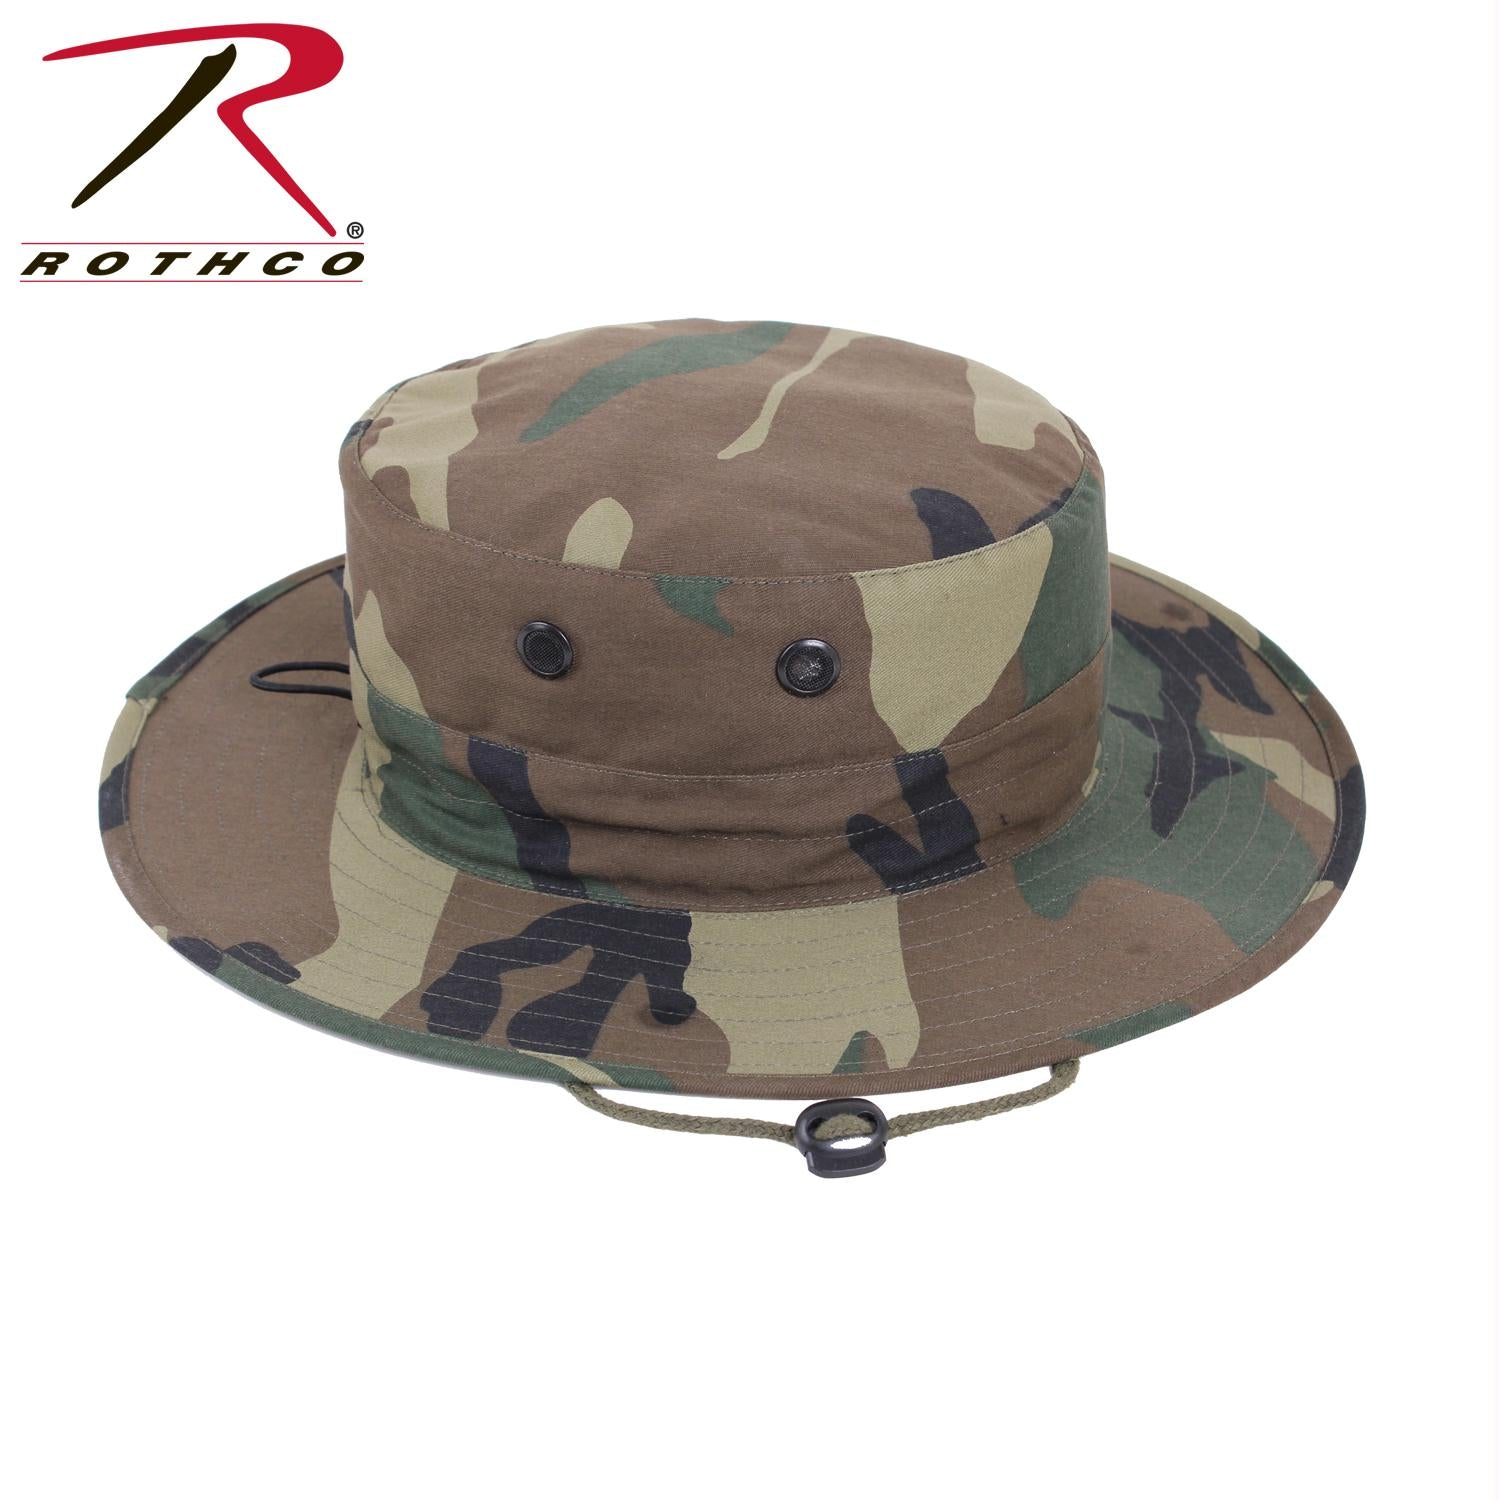 Rothco Adjustable Boonie Hat - Woodland Camo / One Size